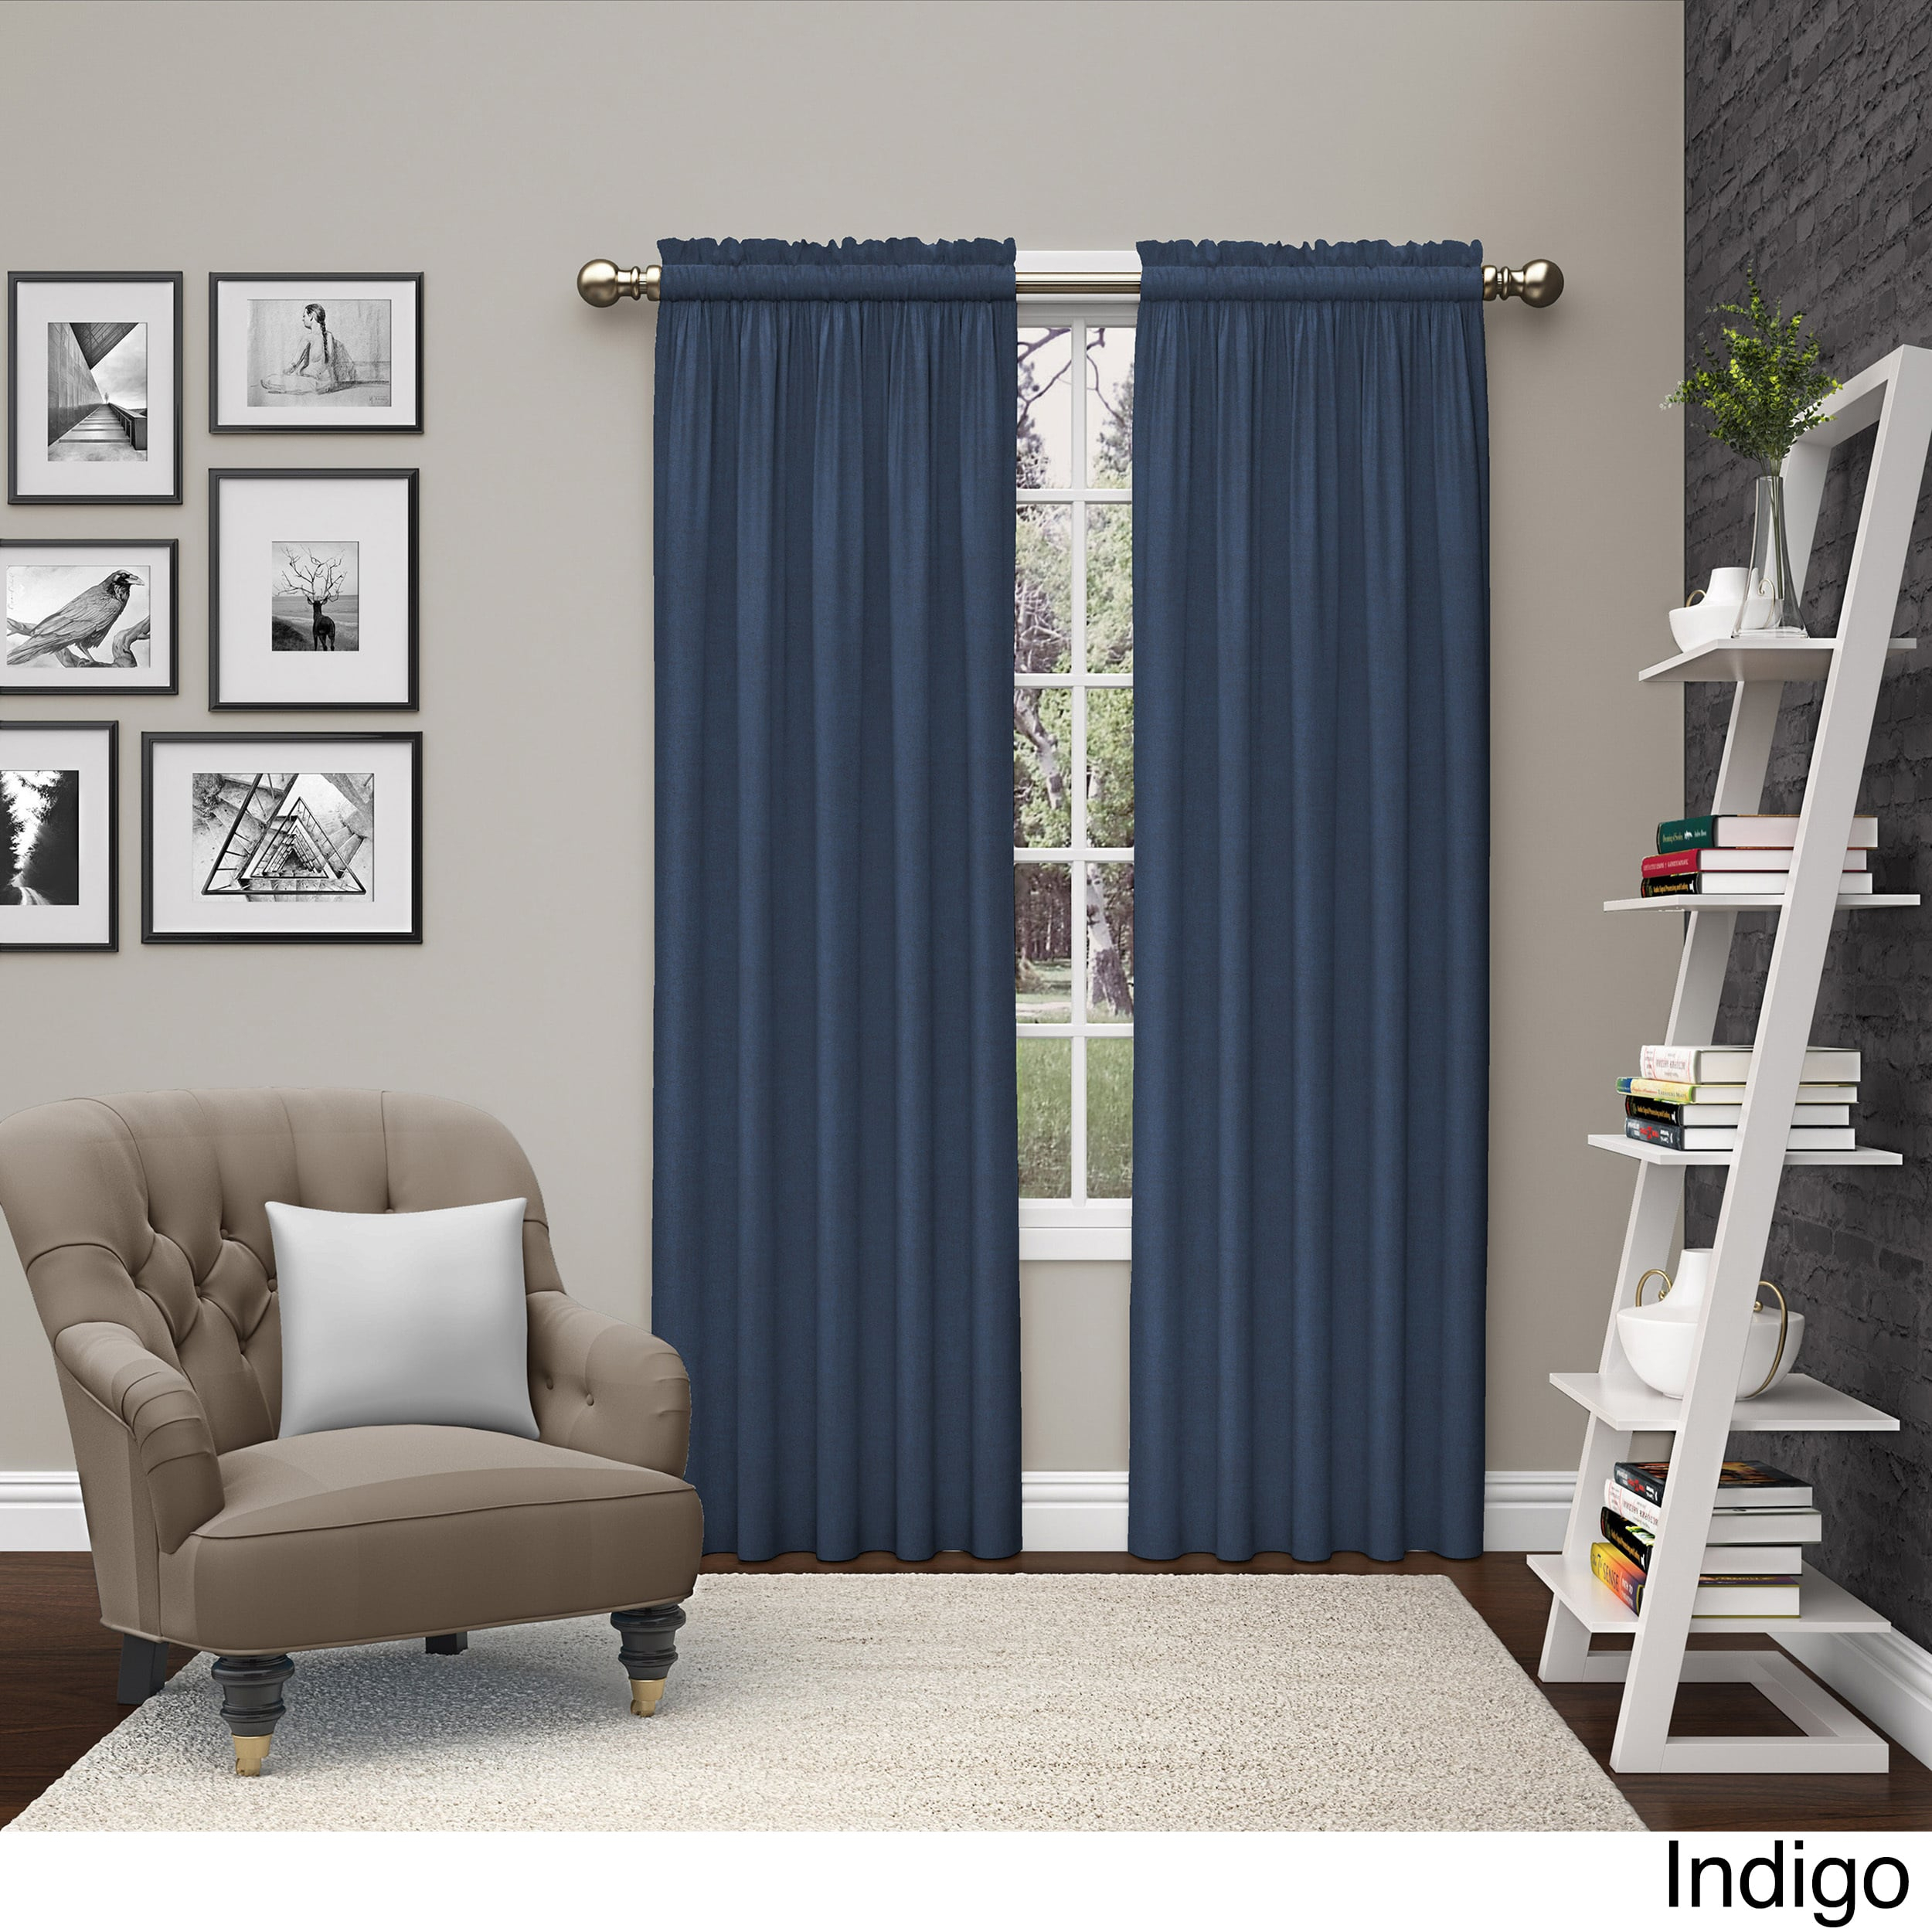 Pairs To Go Teller 2 Pack Window Curtain Panel Pairs Throughout Curtain Panel Pairs (View 3 of 20)